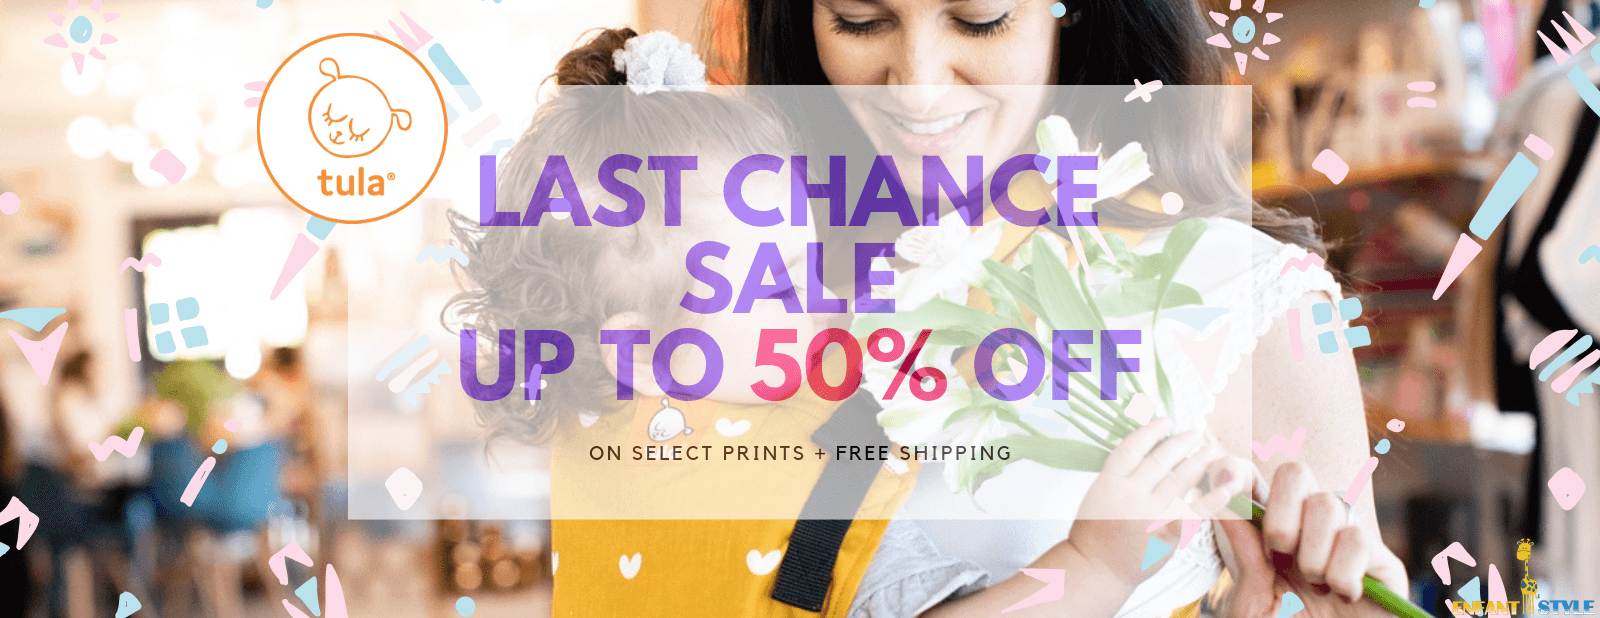 tula baby carrier boxing day sale at Enfant Style